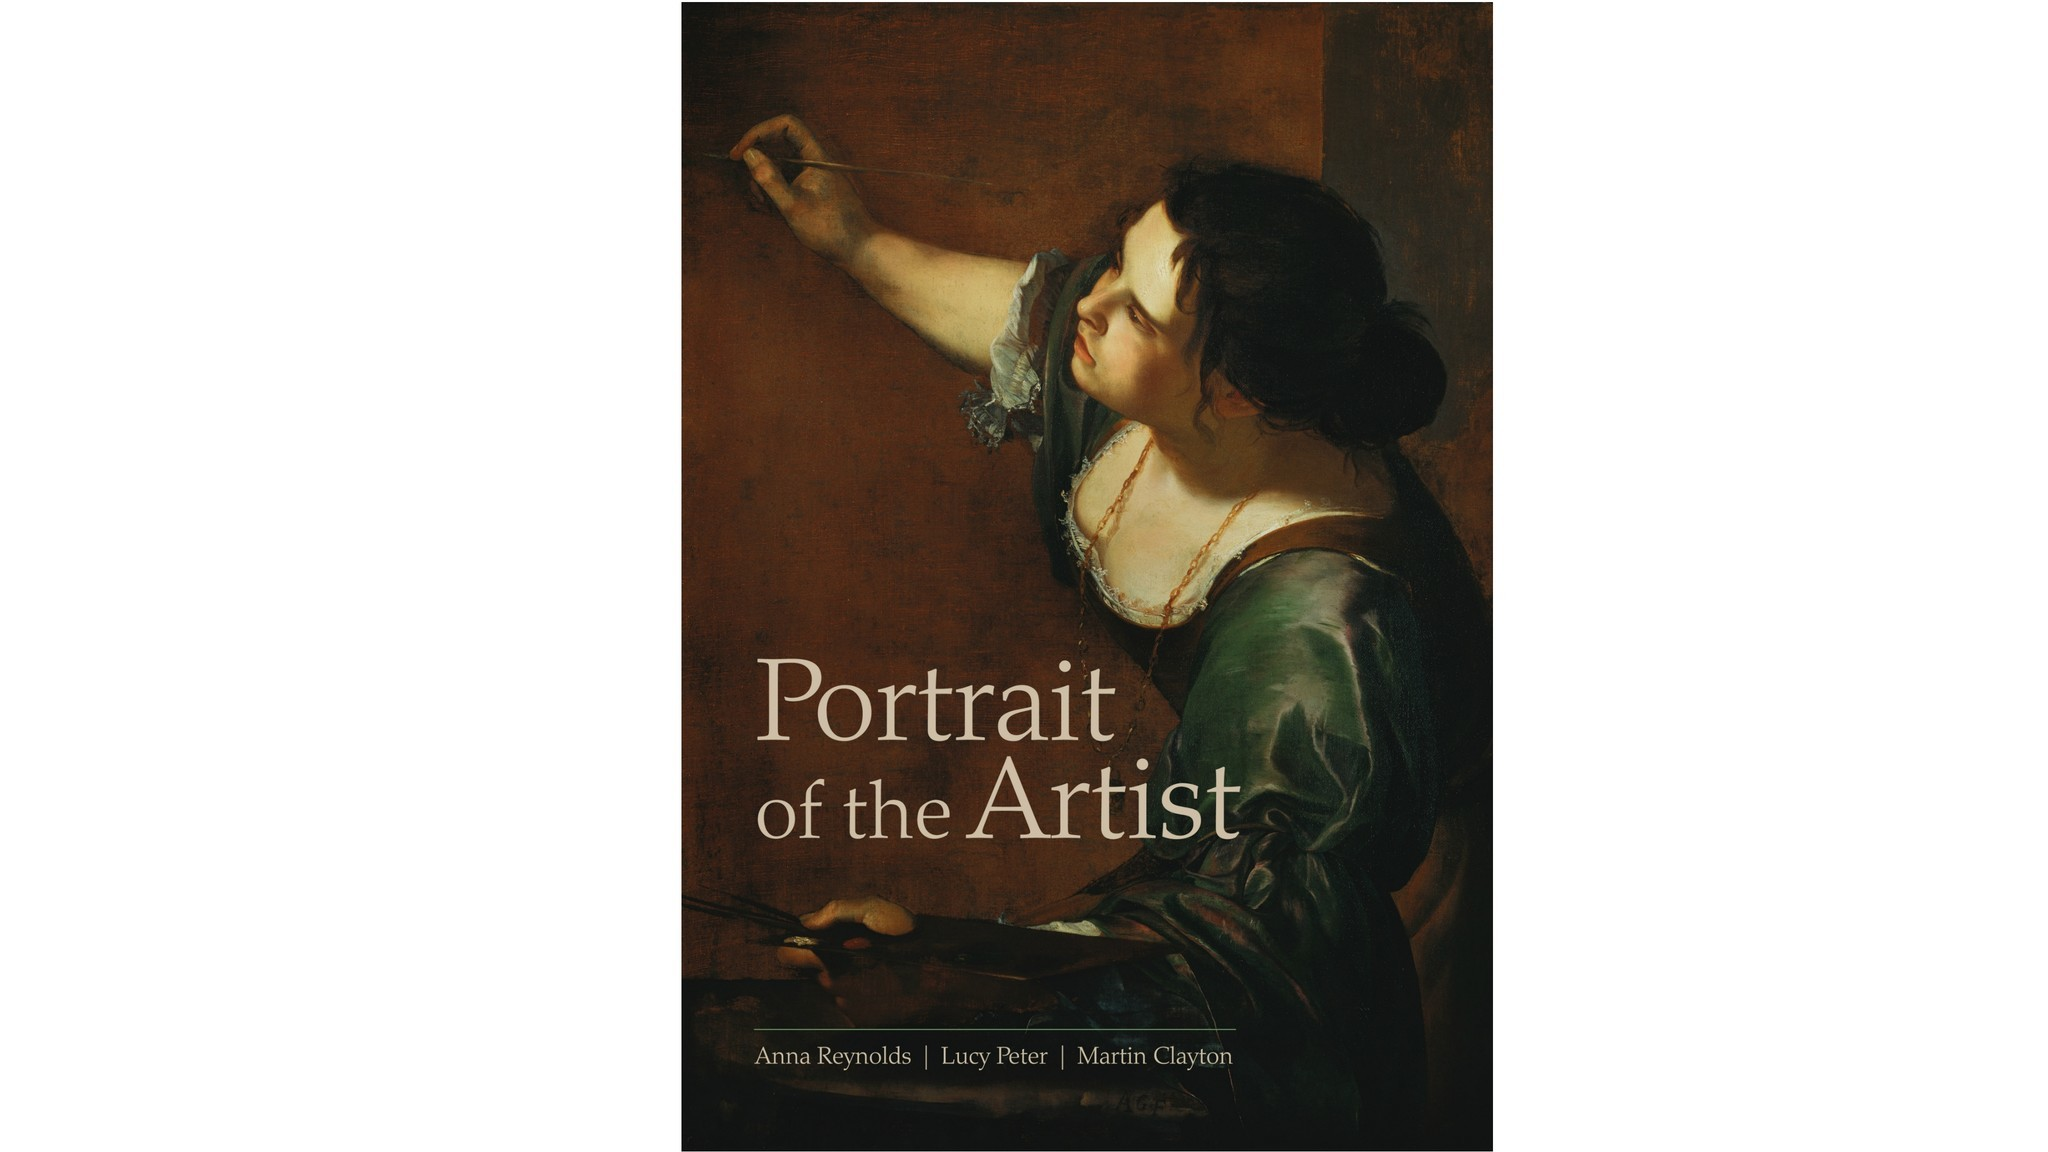 """Portrait of the Artist"" by Anna Reynolds, Lucy Peter, and Martin Clayton"